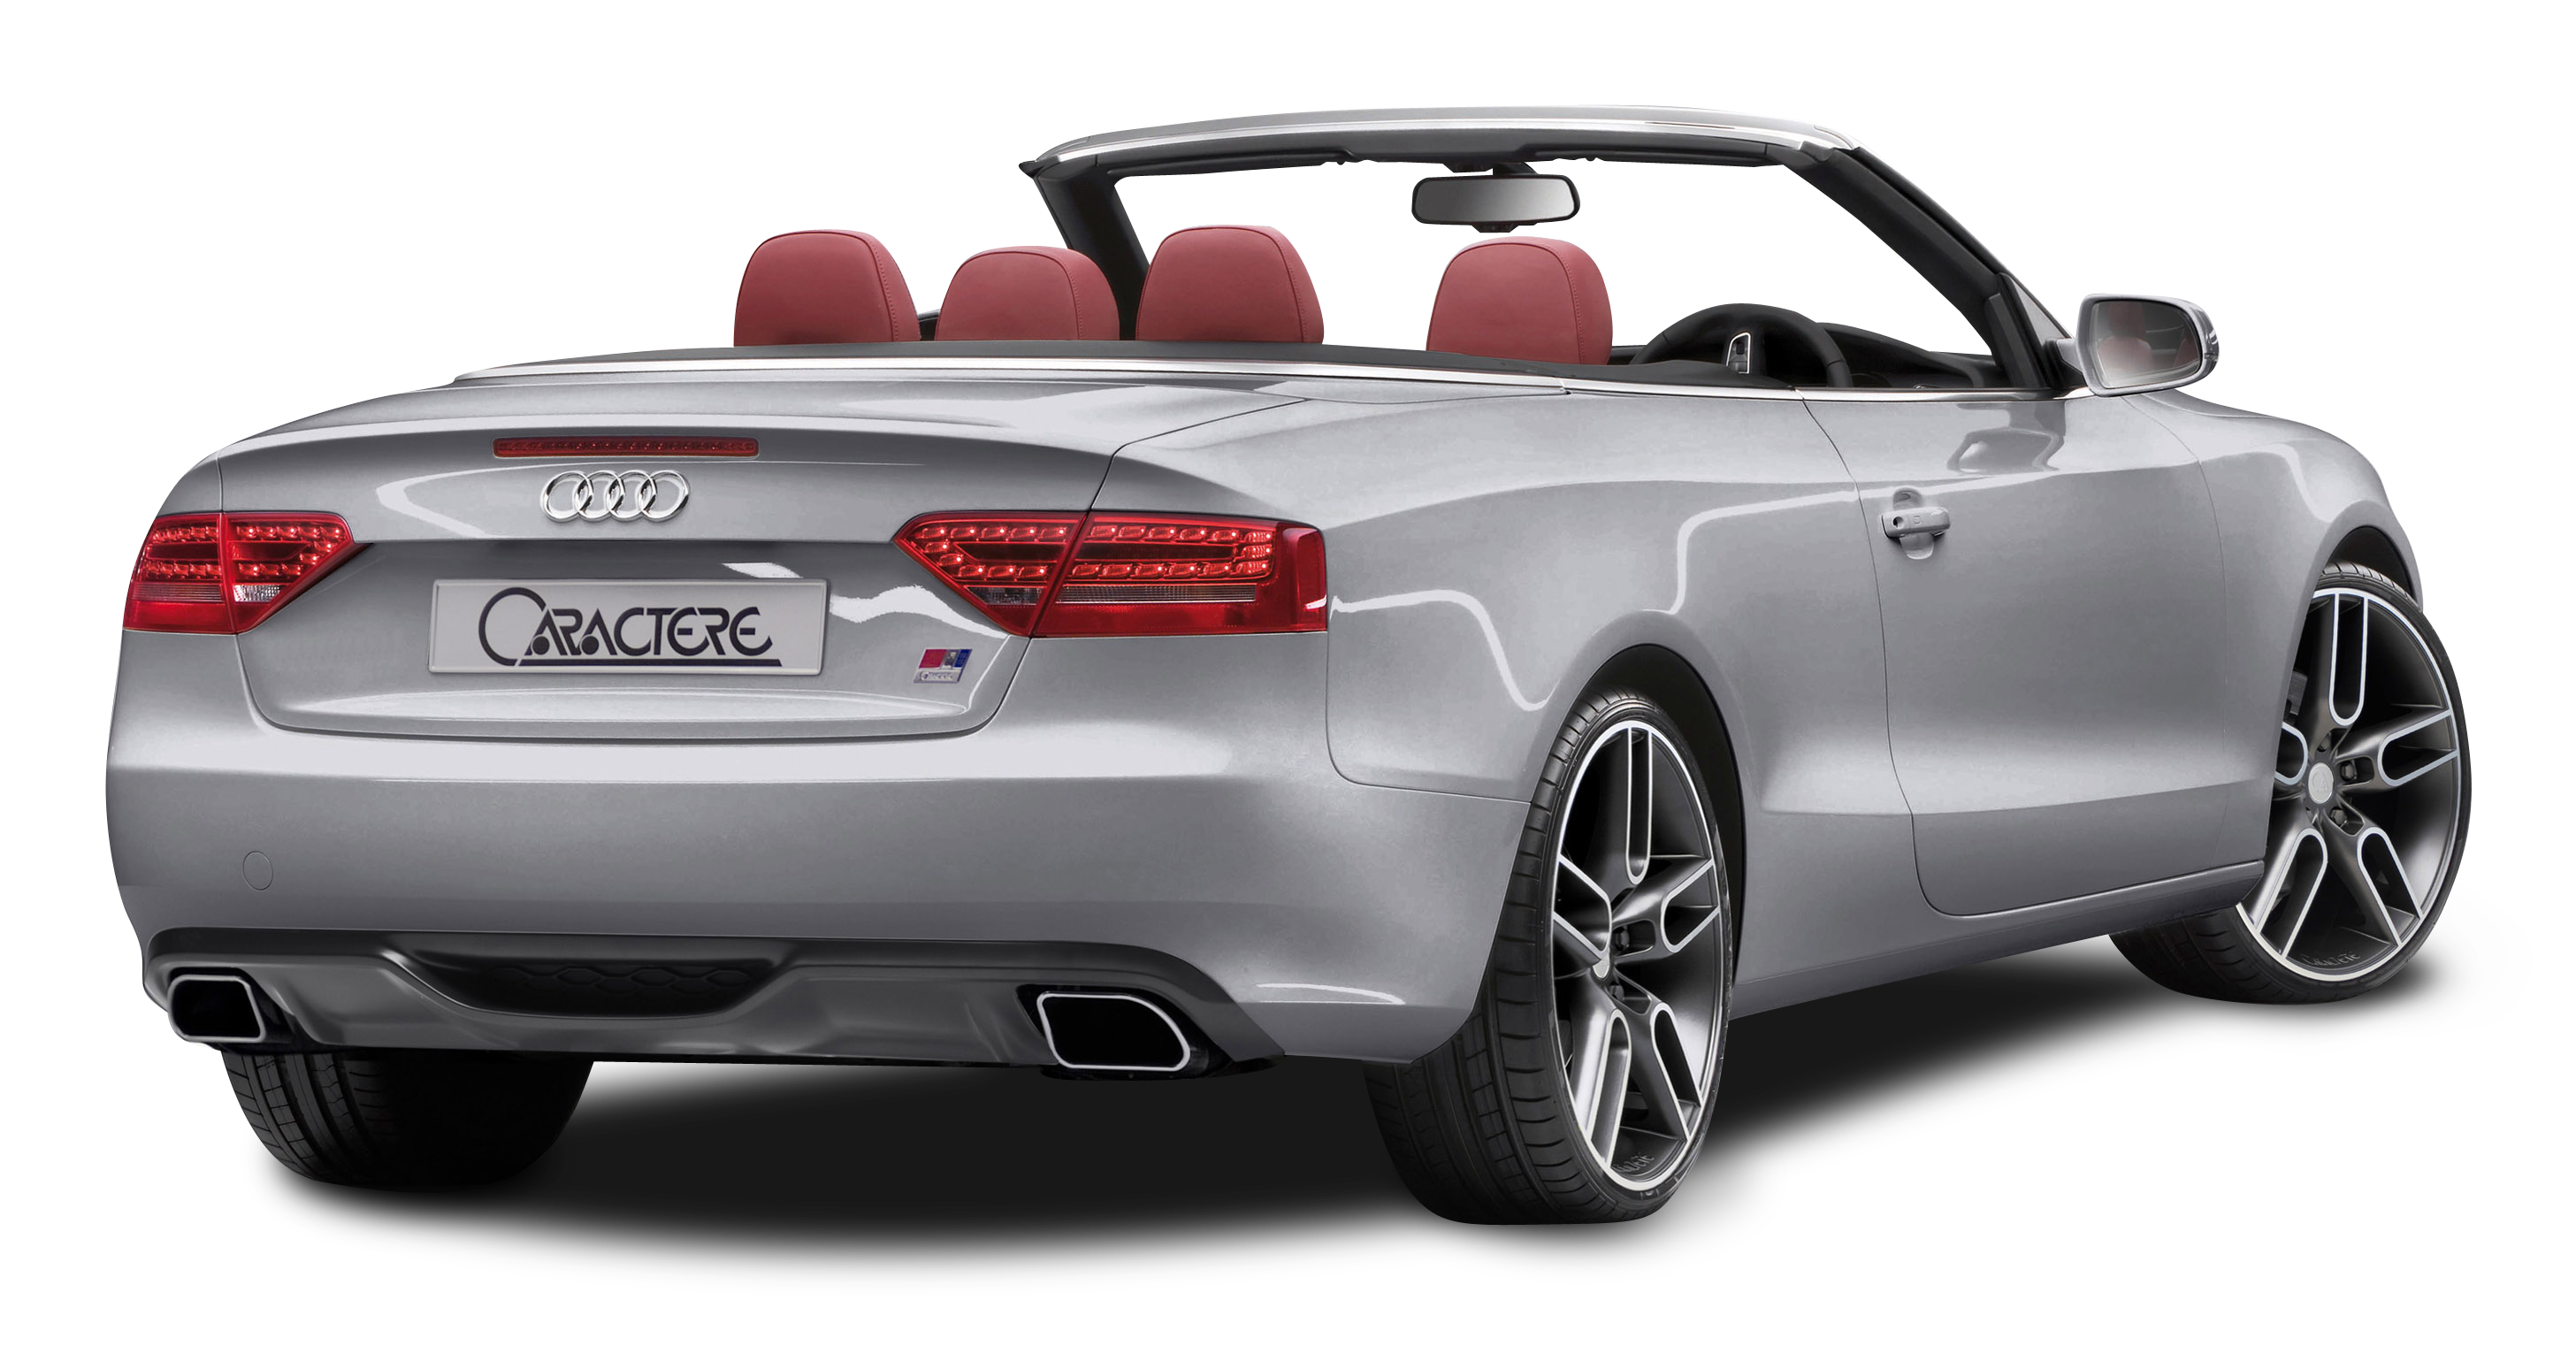 Audi A5 CABRIO Grey Back View Car PNG Image.